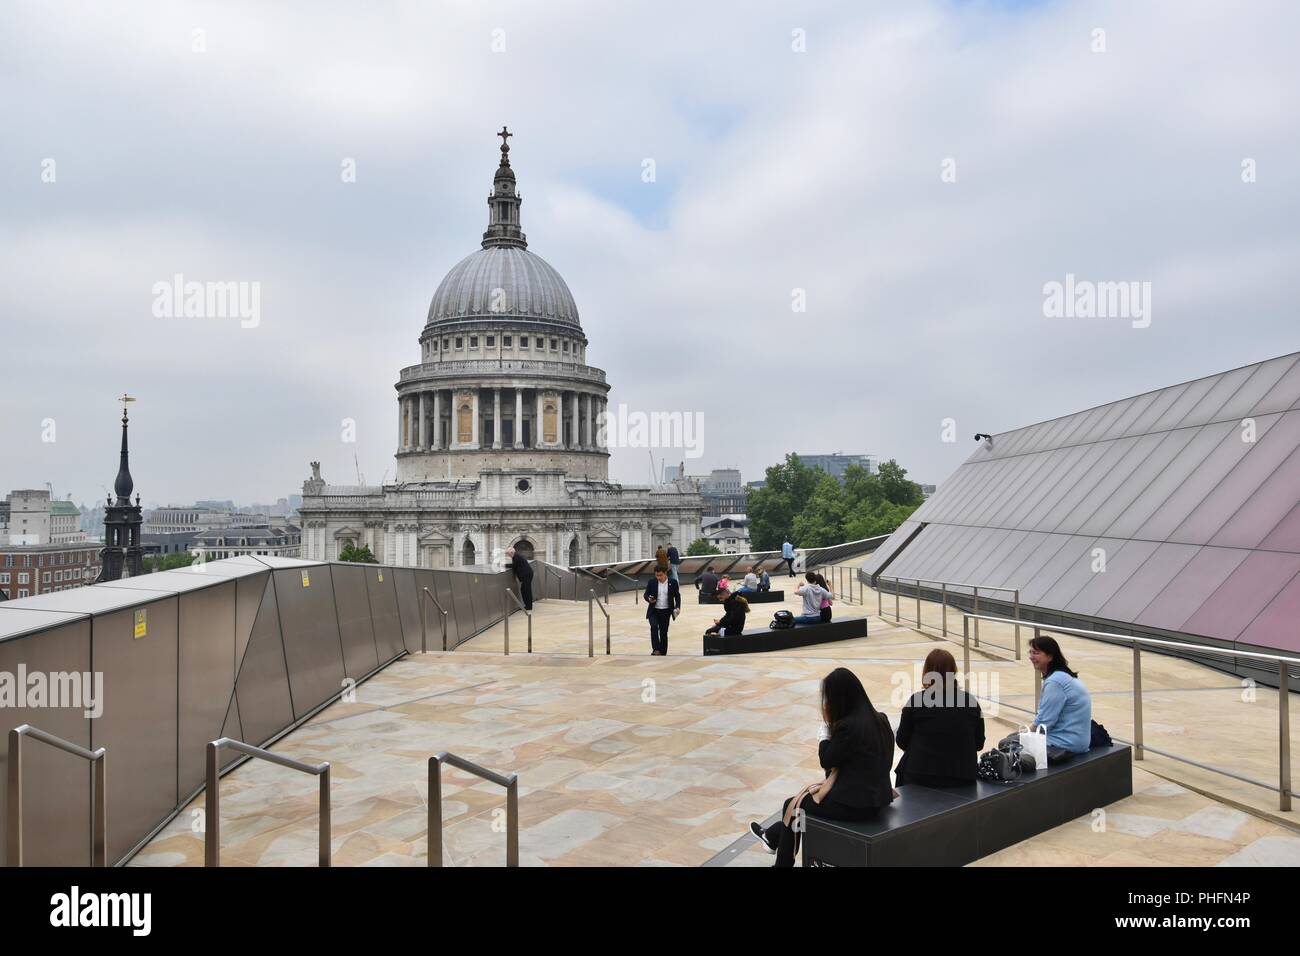 Saint Paul's Cathedral seen from One New Change, City of London, England, United Kingdom - Stock Image